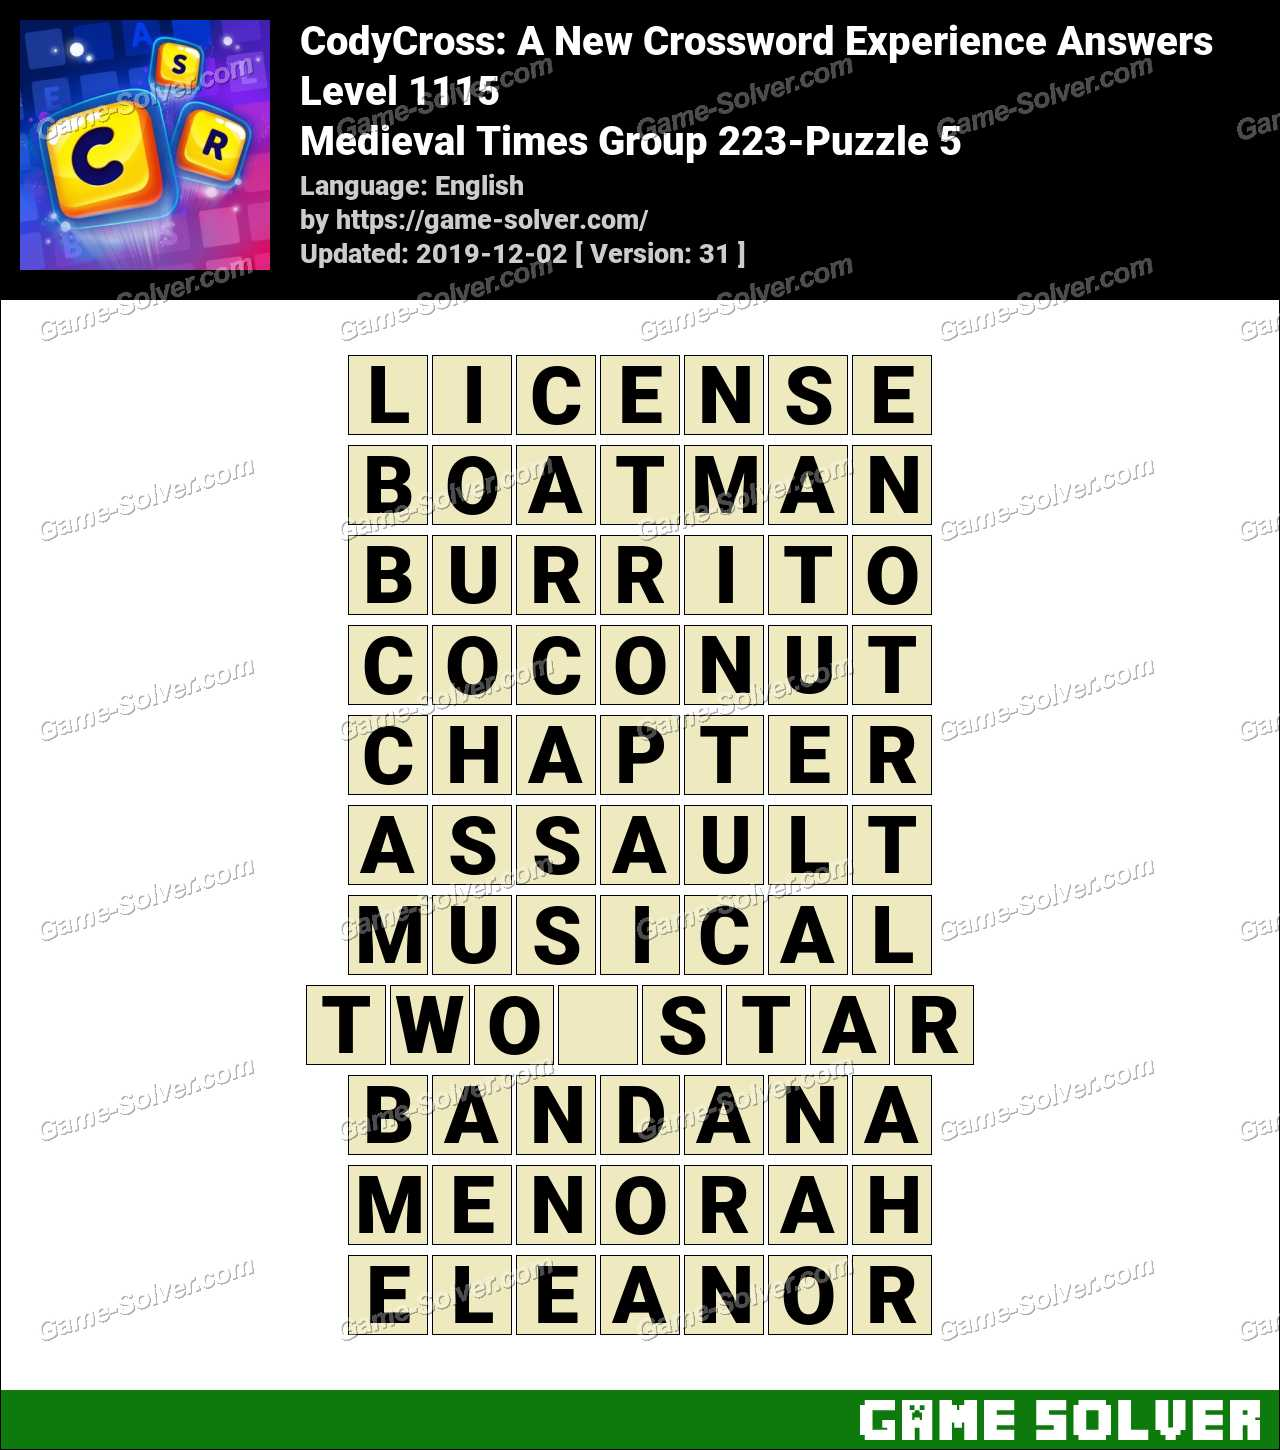 CodyCross Medieval Times Group 223-Puzzle 5 Answers